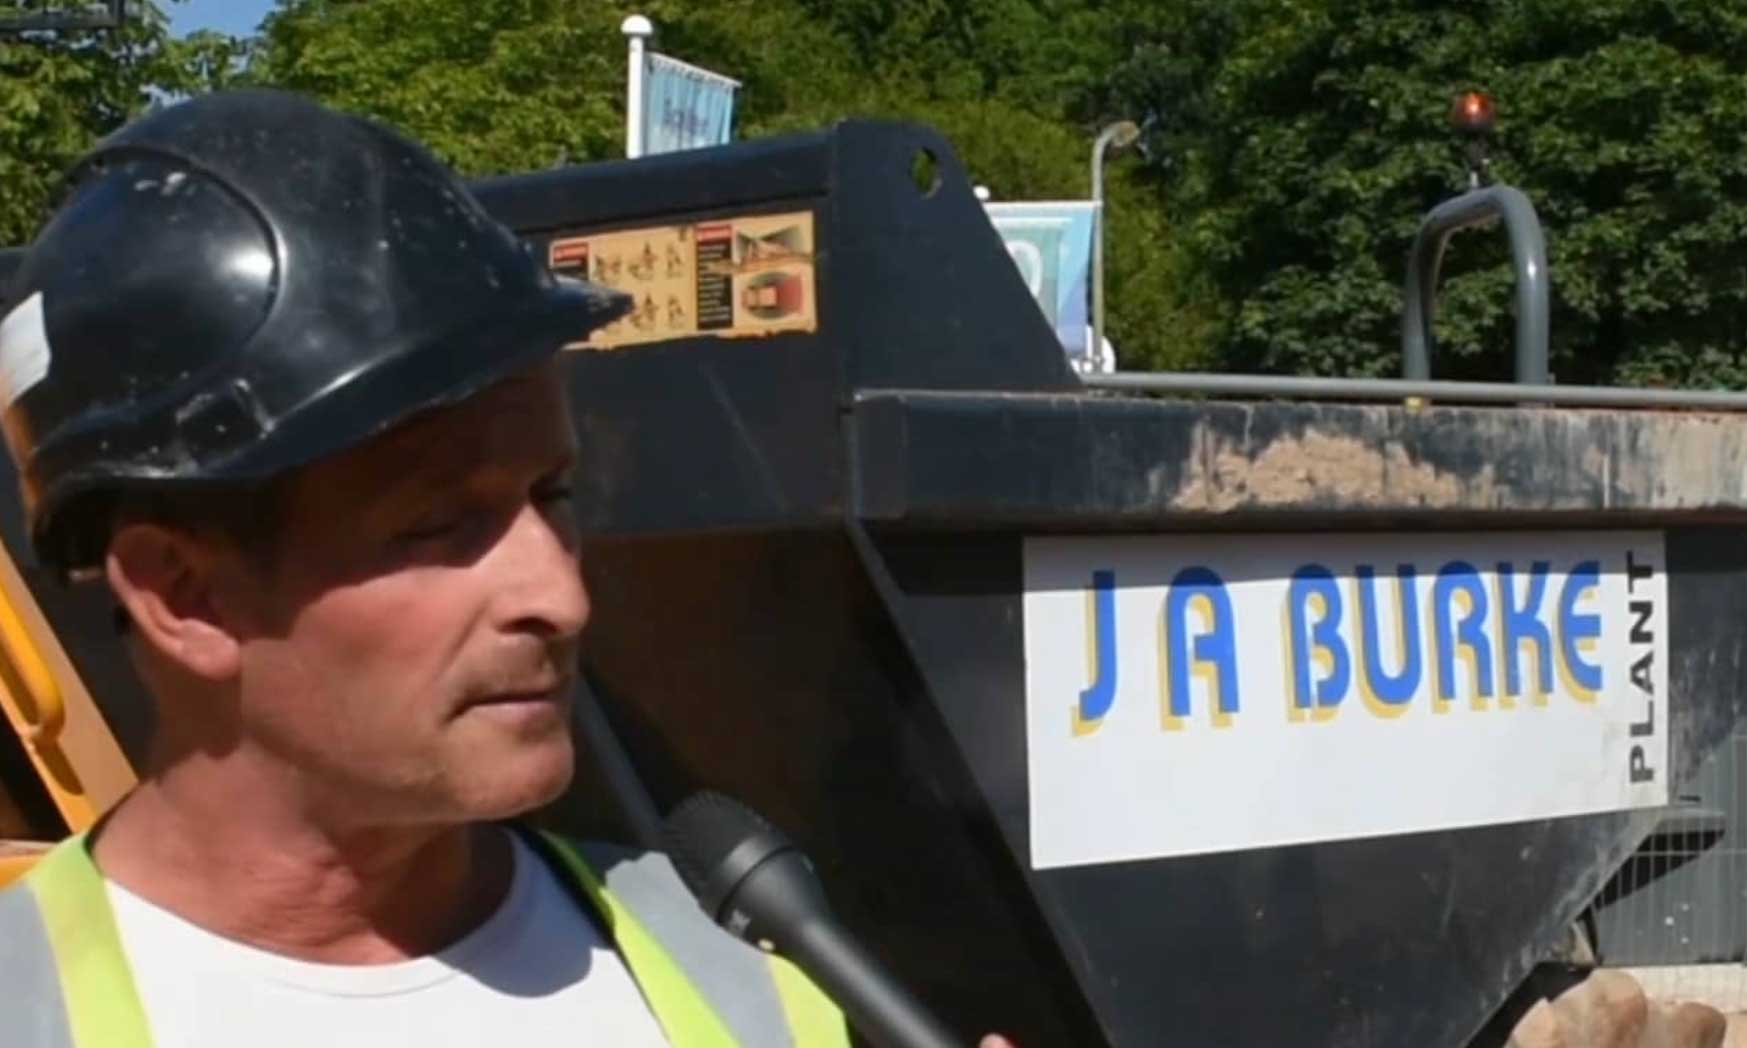 Apprentice video - J A Burke Construction Limited - Midlands based ground works, civils and RC frame company.